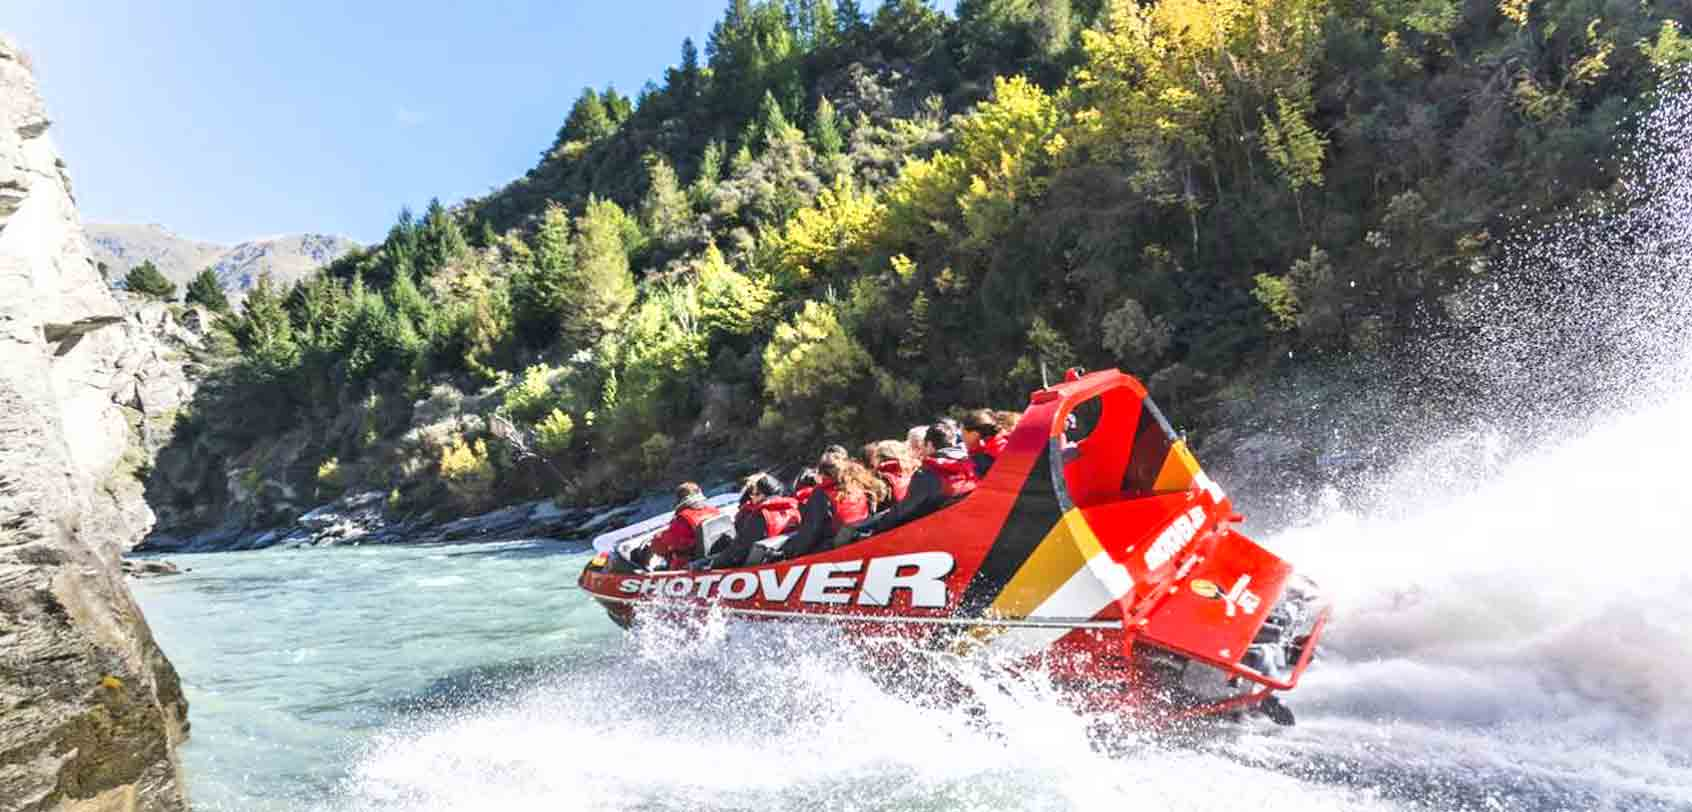 shotover-jet-boat-queenstown-new-zealand